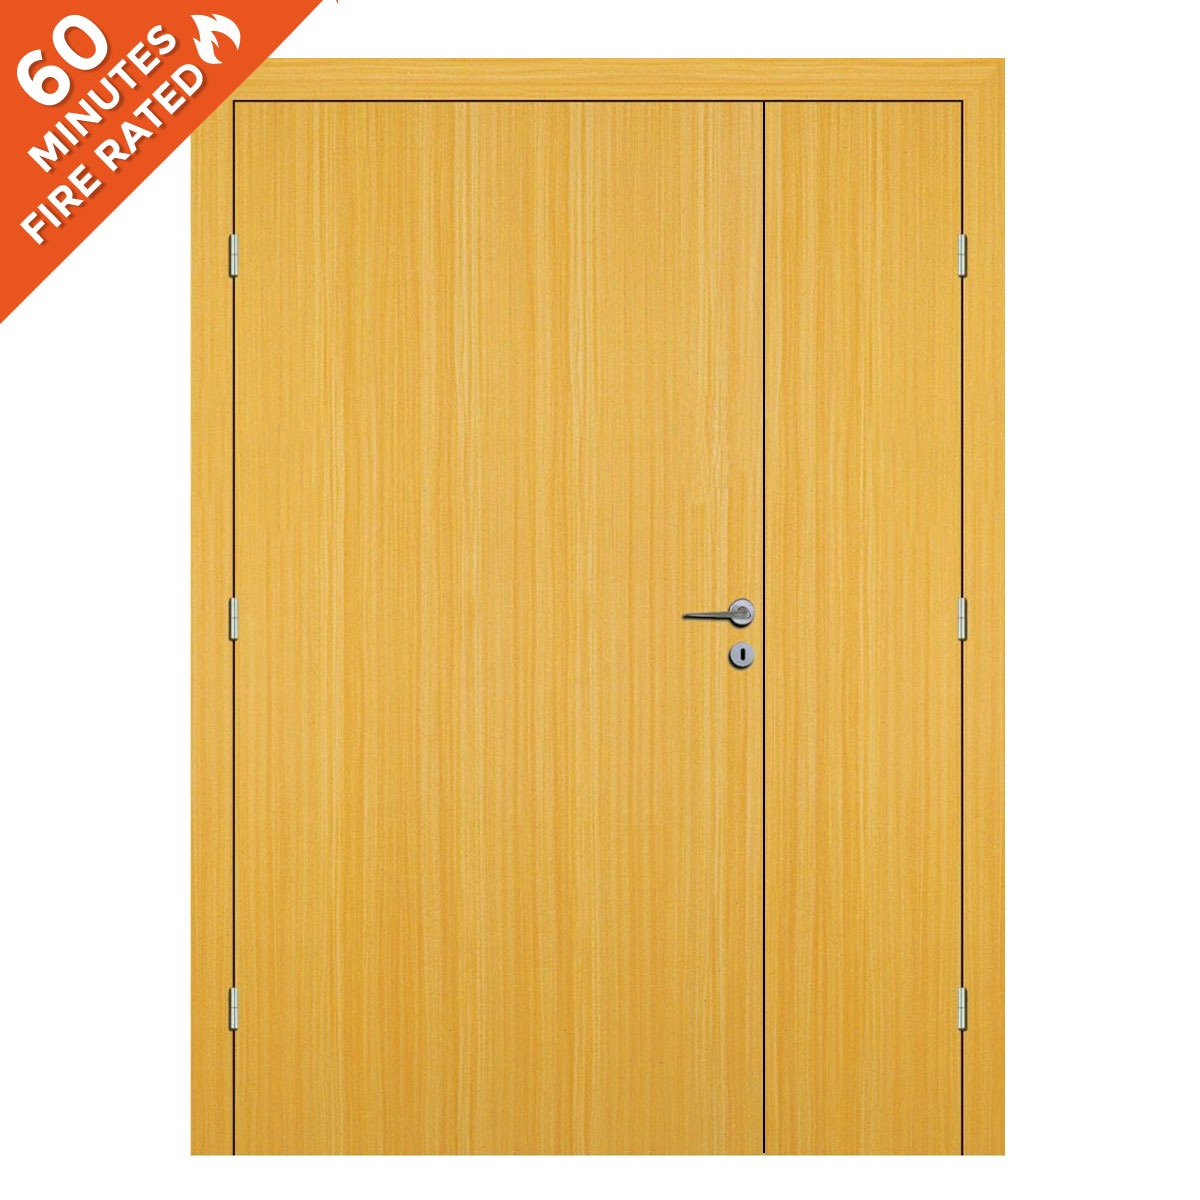 Koto Hospital Door FD60